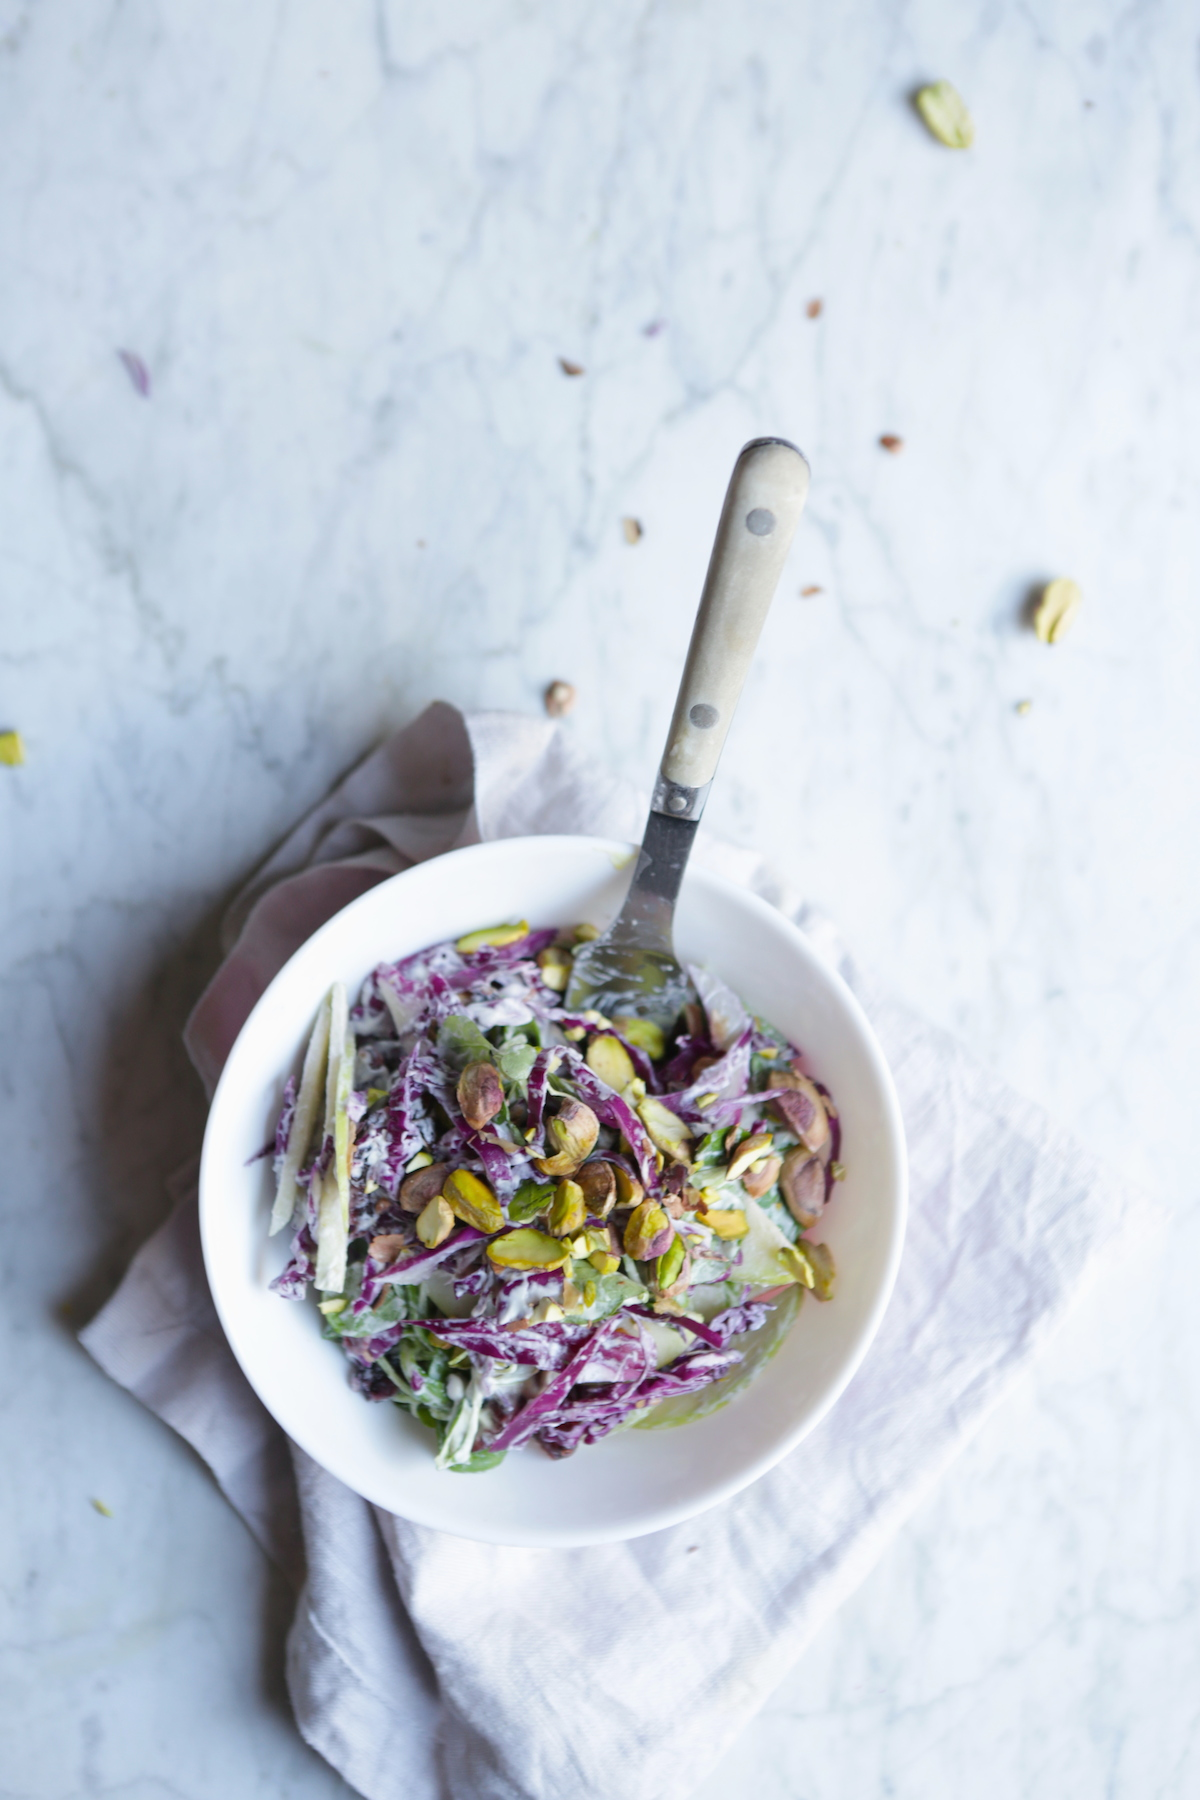 VEGAN CRUNCHY & CREAMY CASHEW MUSTARD COLESLAW WITH TOASTED PISTACHIOS